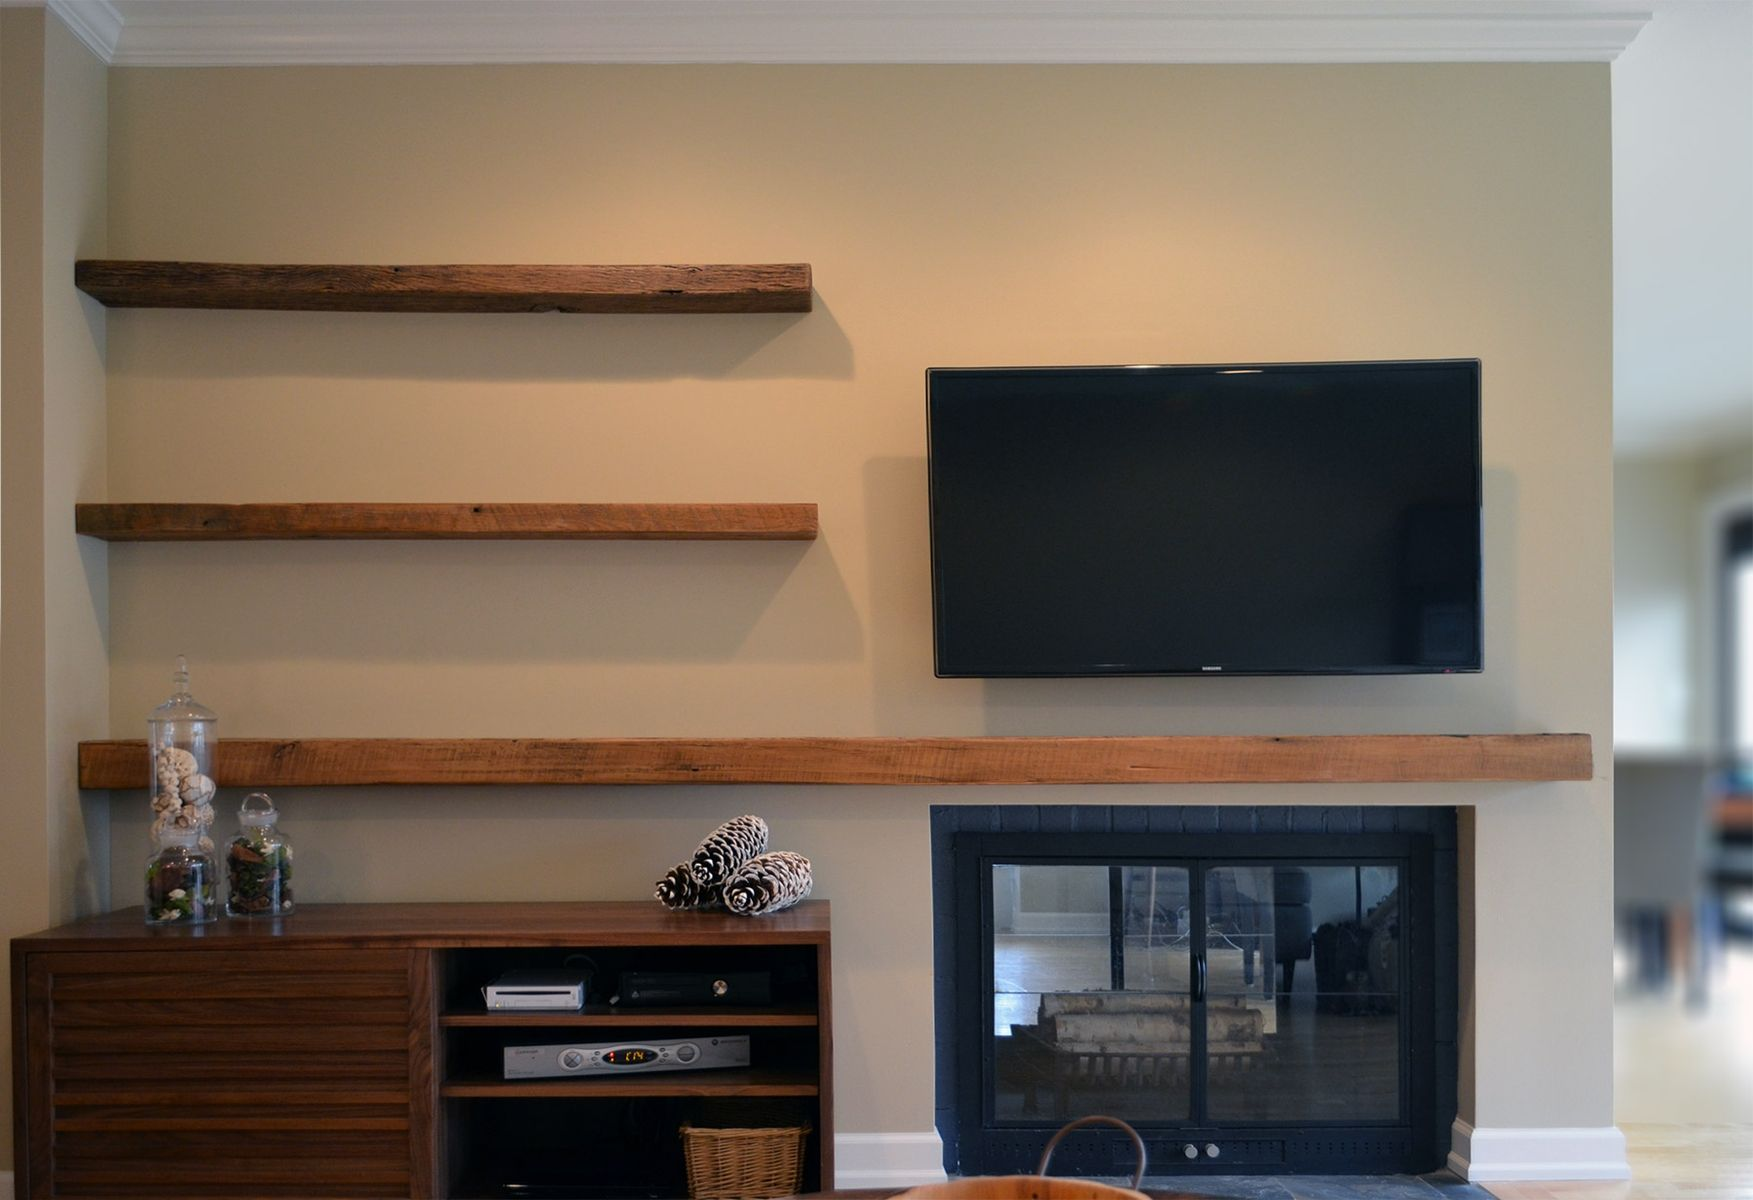 hand made reclaimed lumber floating shelves abodeacious for entertainment system custom oak wood fireplace mantels kitchen shower sizes bunnings storage racks diy shed installing